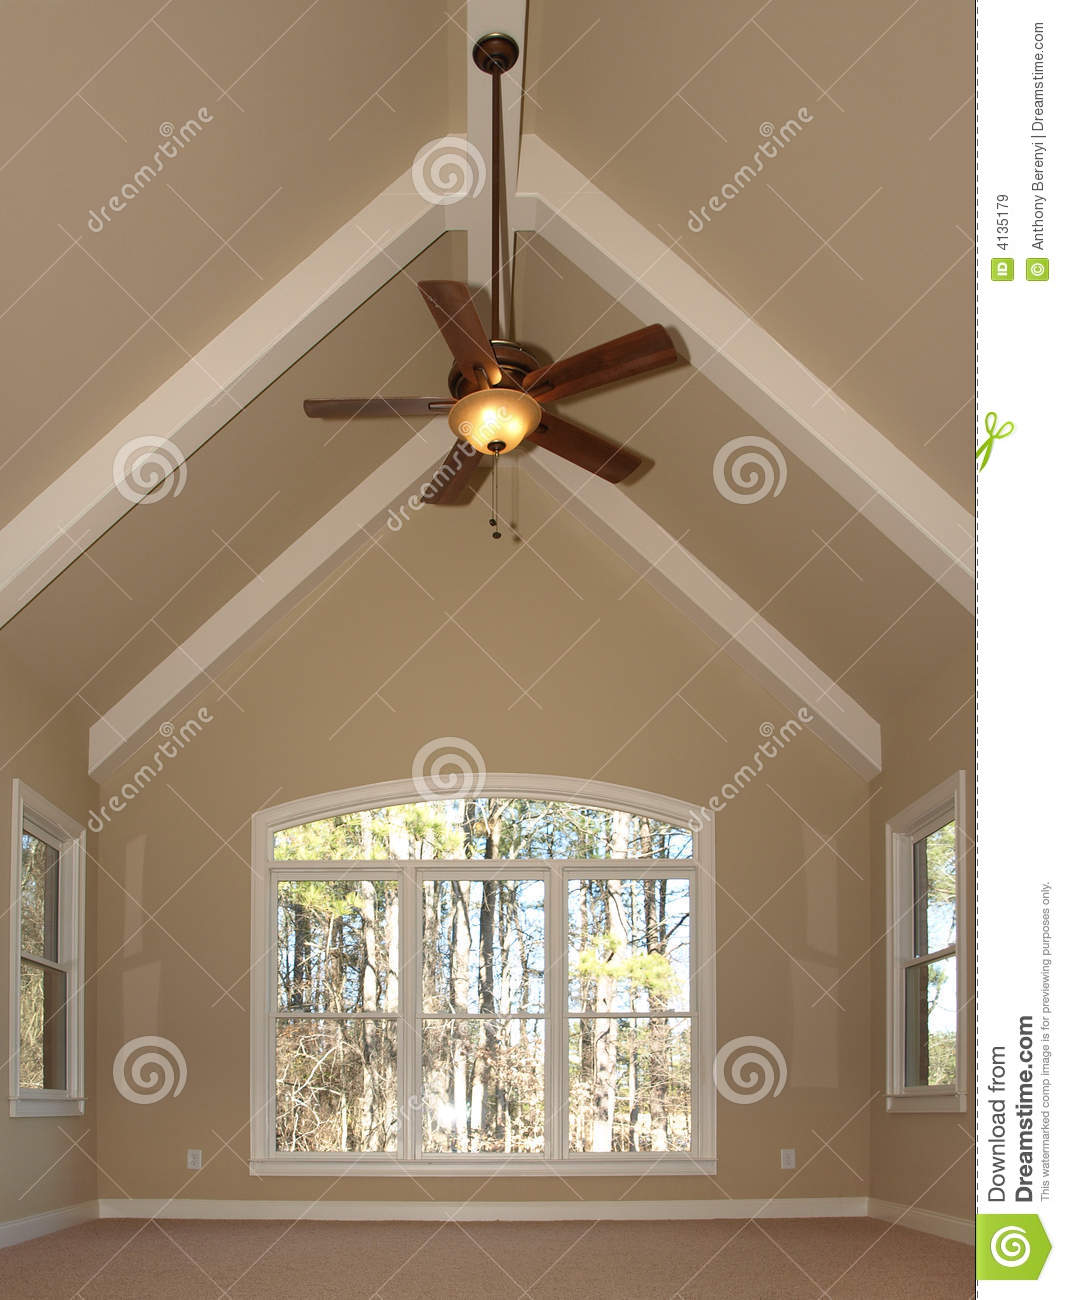 Luxury room with vaulted ceiling stock image image of for Vaulted vs cathedral ceiling